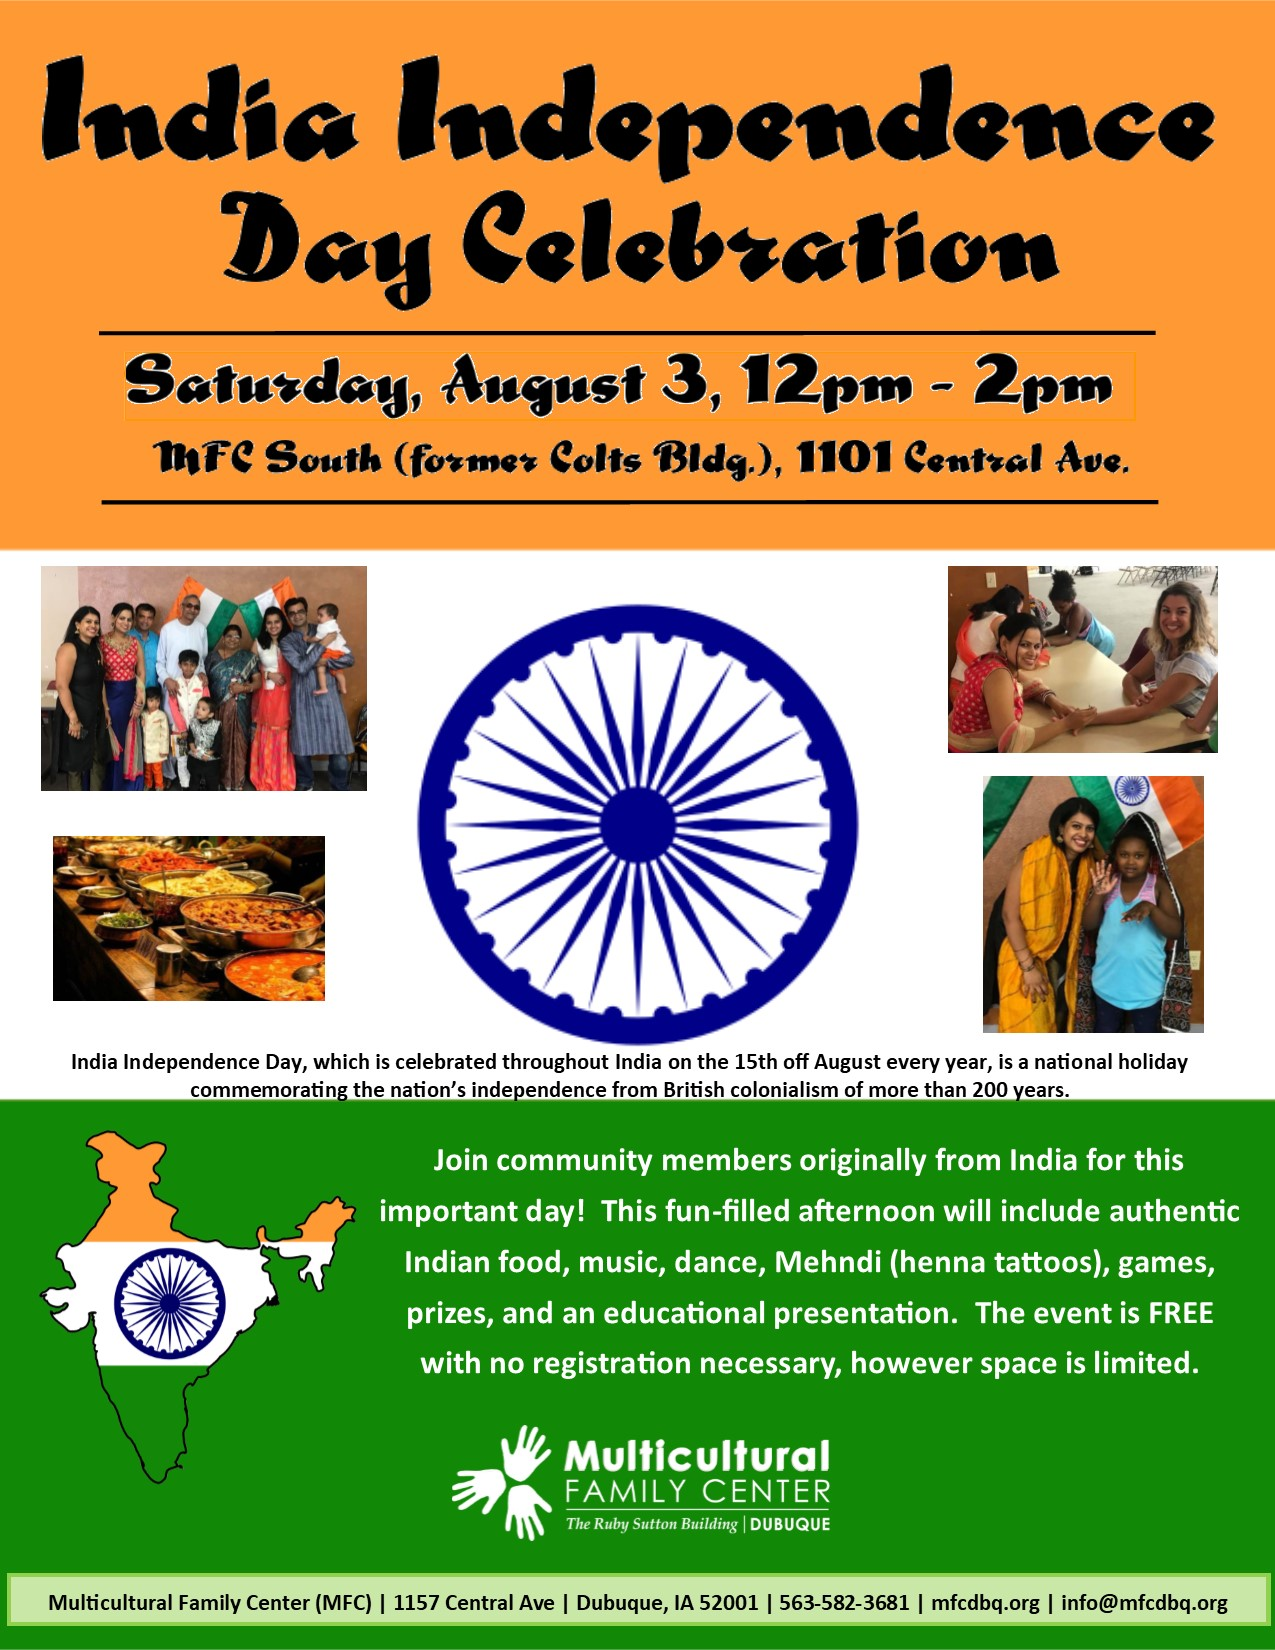 India Independence Day Celebration 2019 | Multicultural